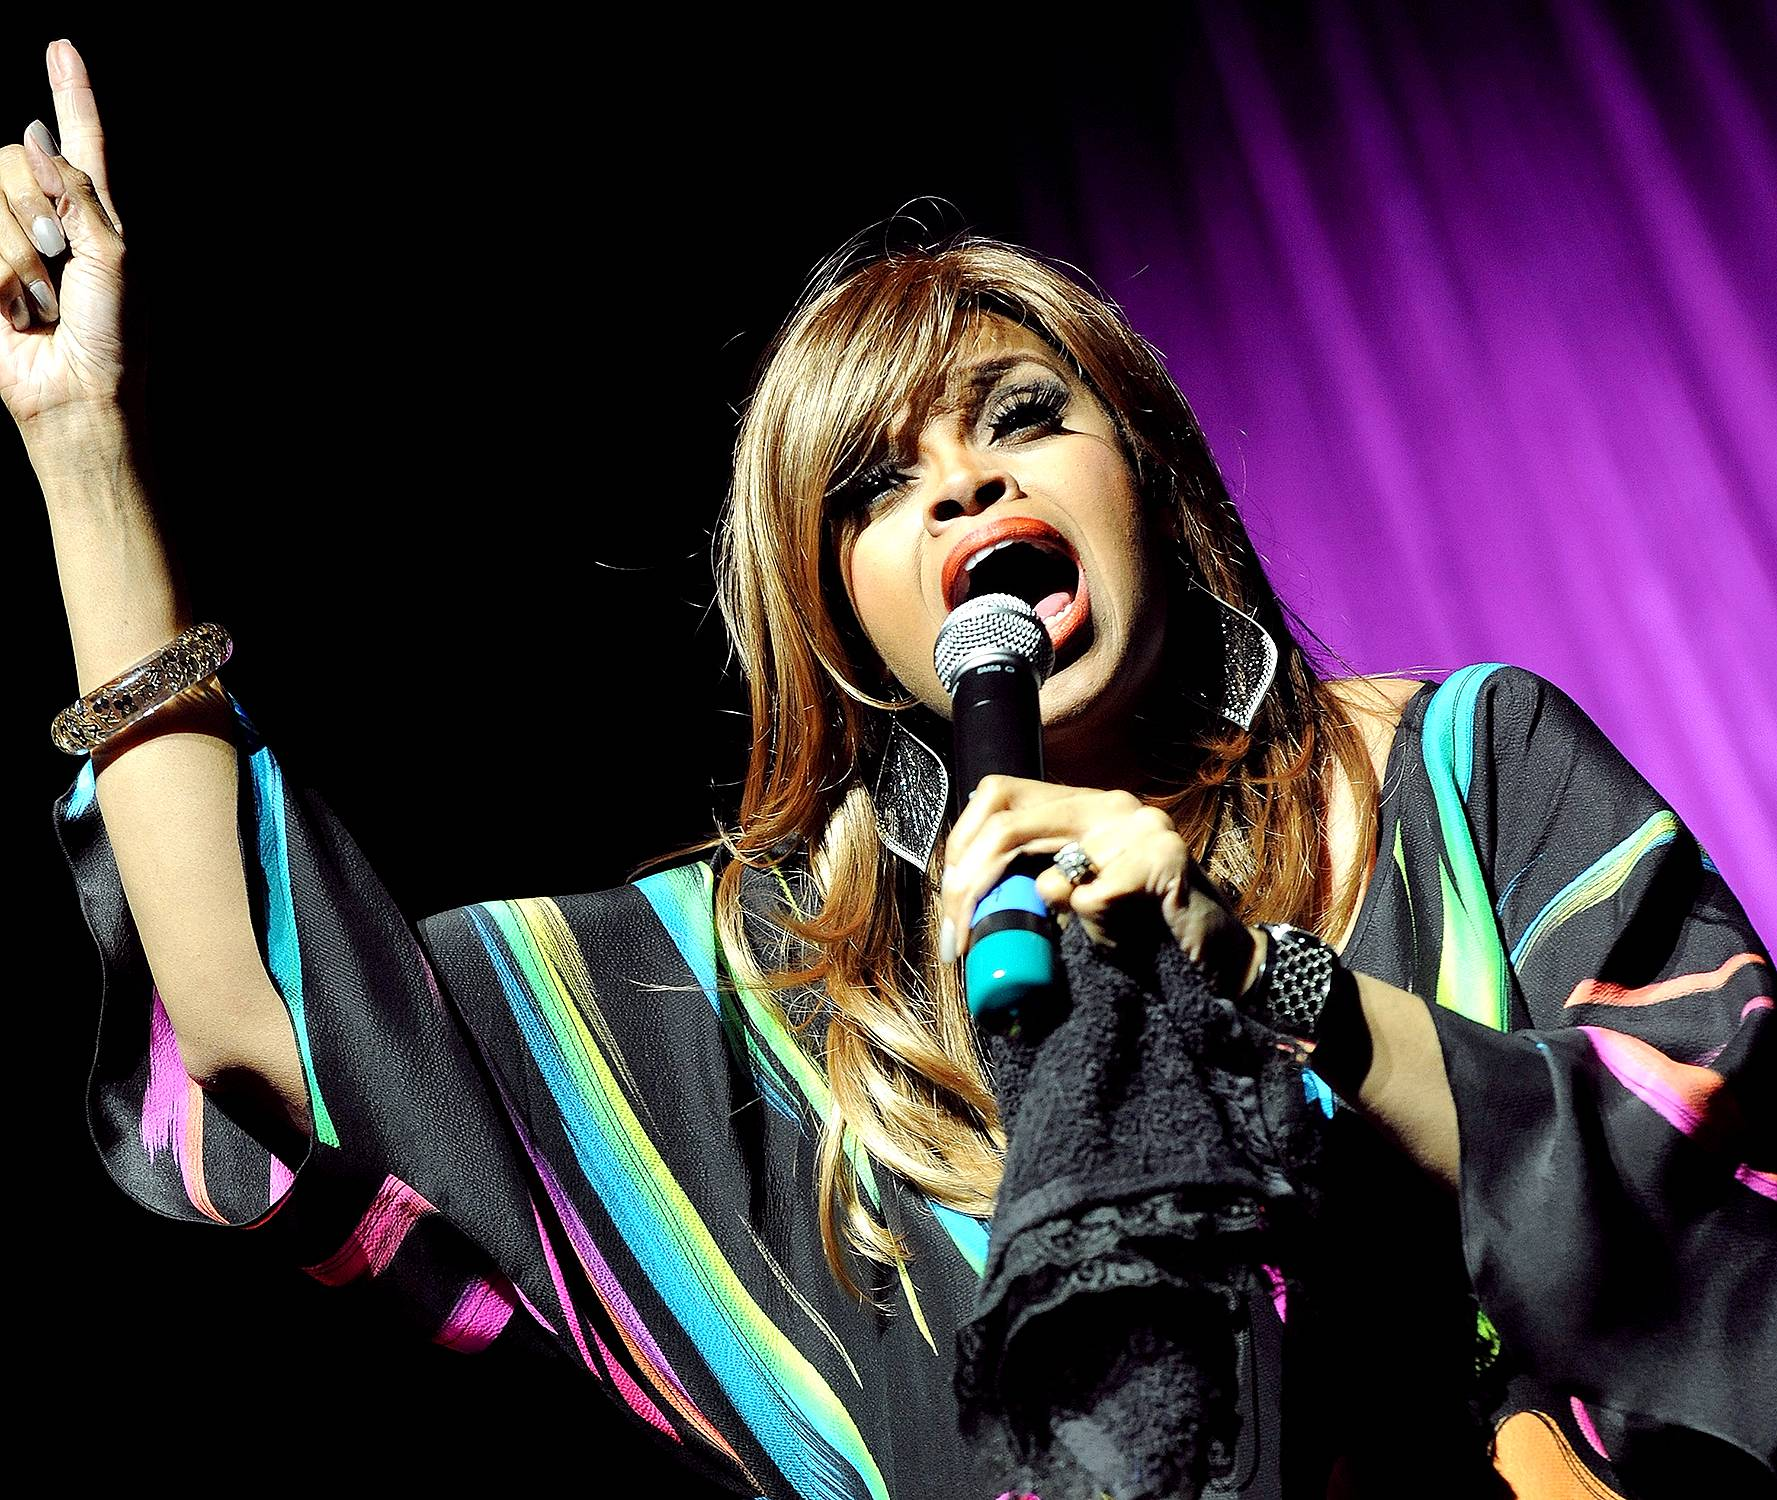 Praise Him Anyhow - Karen Clark-Sheard performs at James L. Knight Center as part of The 11th Annual Super Bowl Gospel Celebration in Miami.(Photo: Rick Diamond/Getty Images for Super Bowl Gospel)